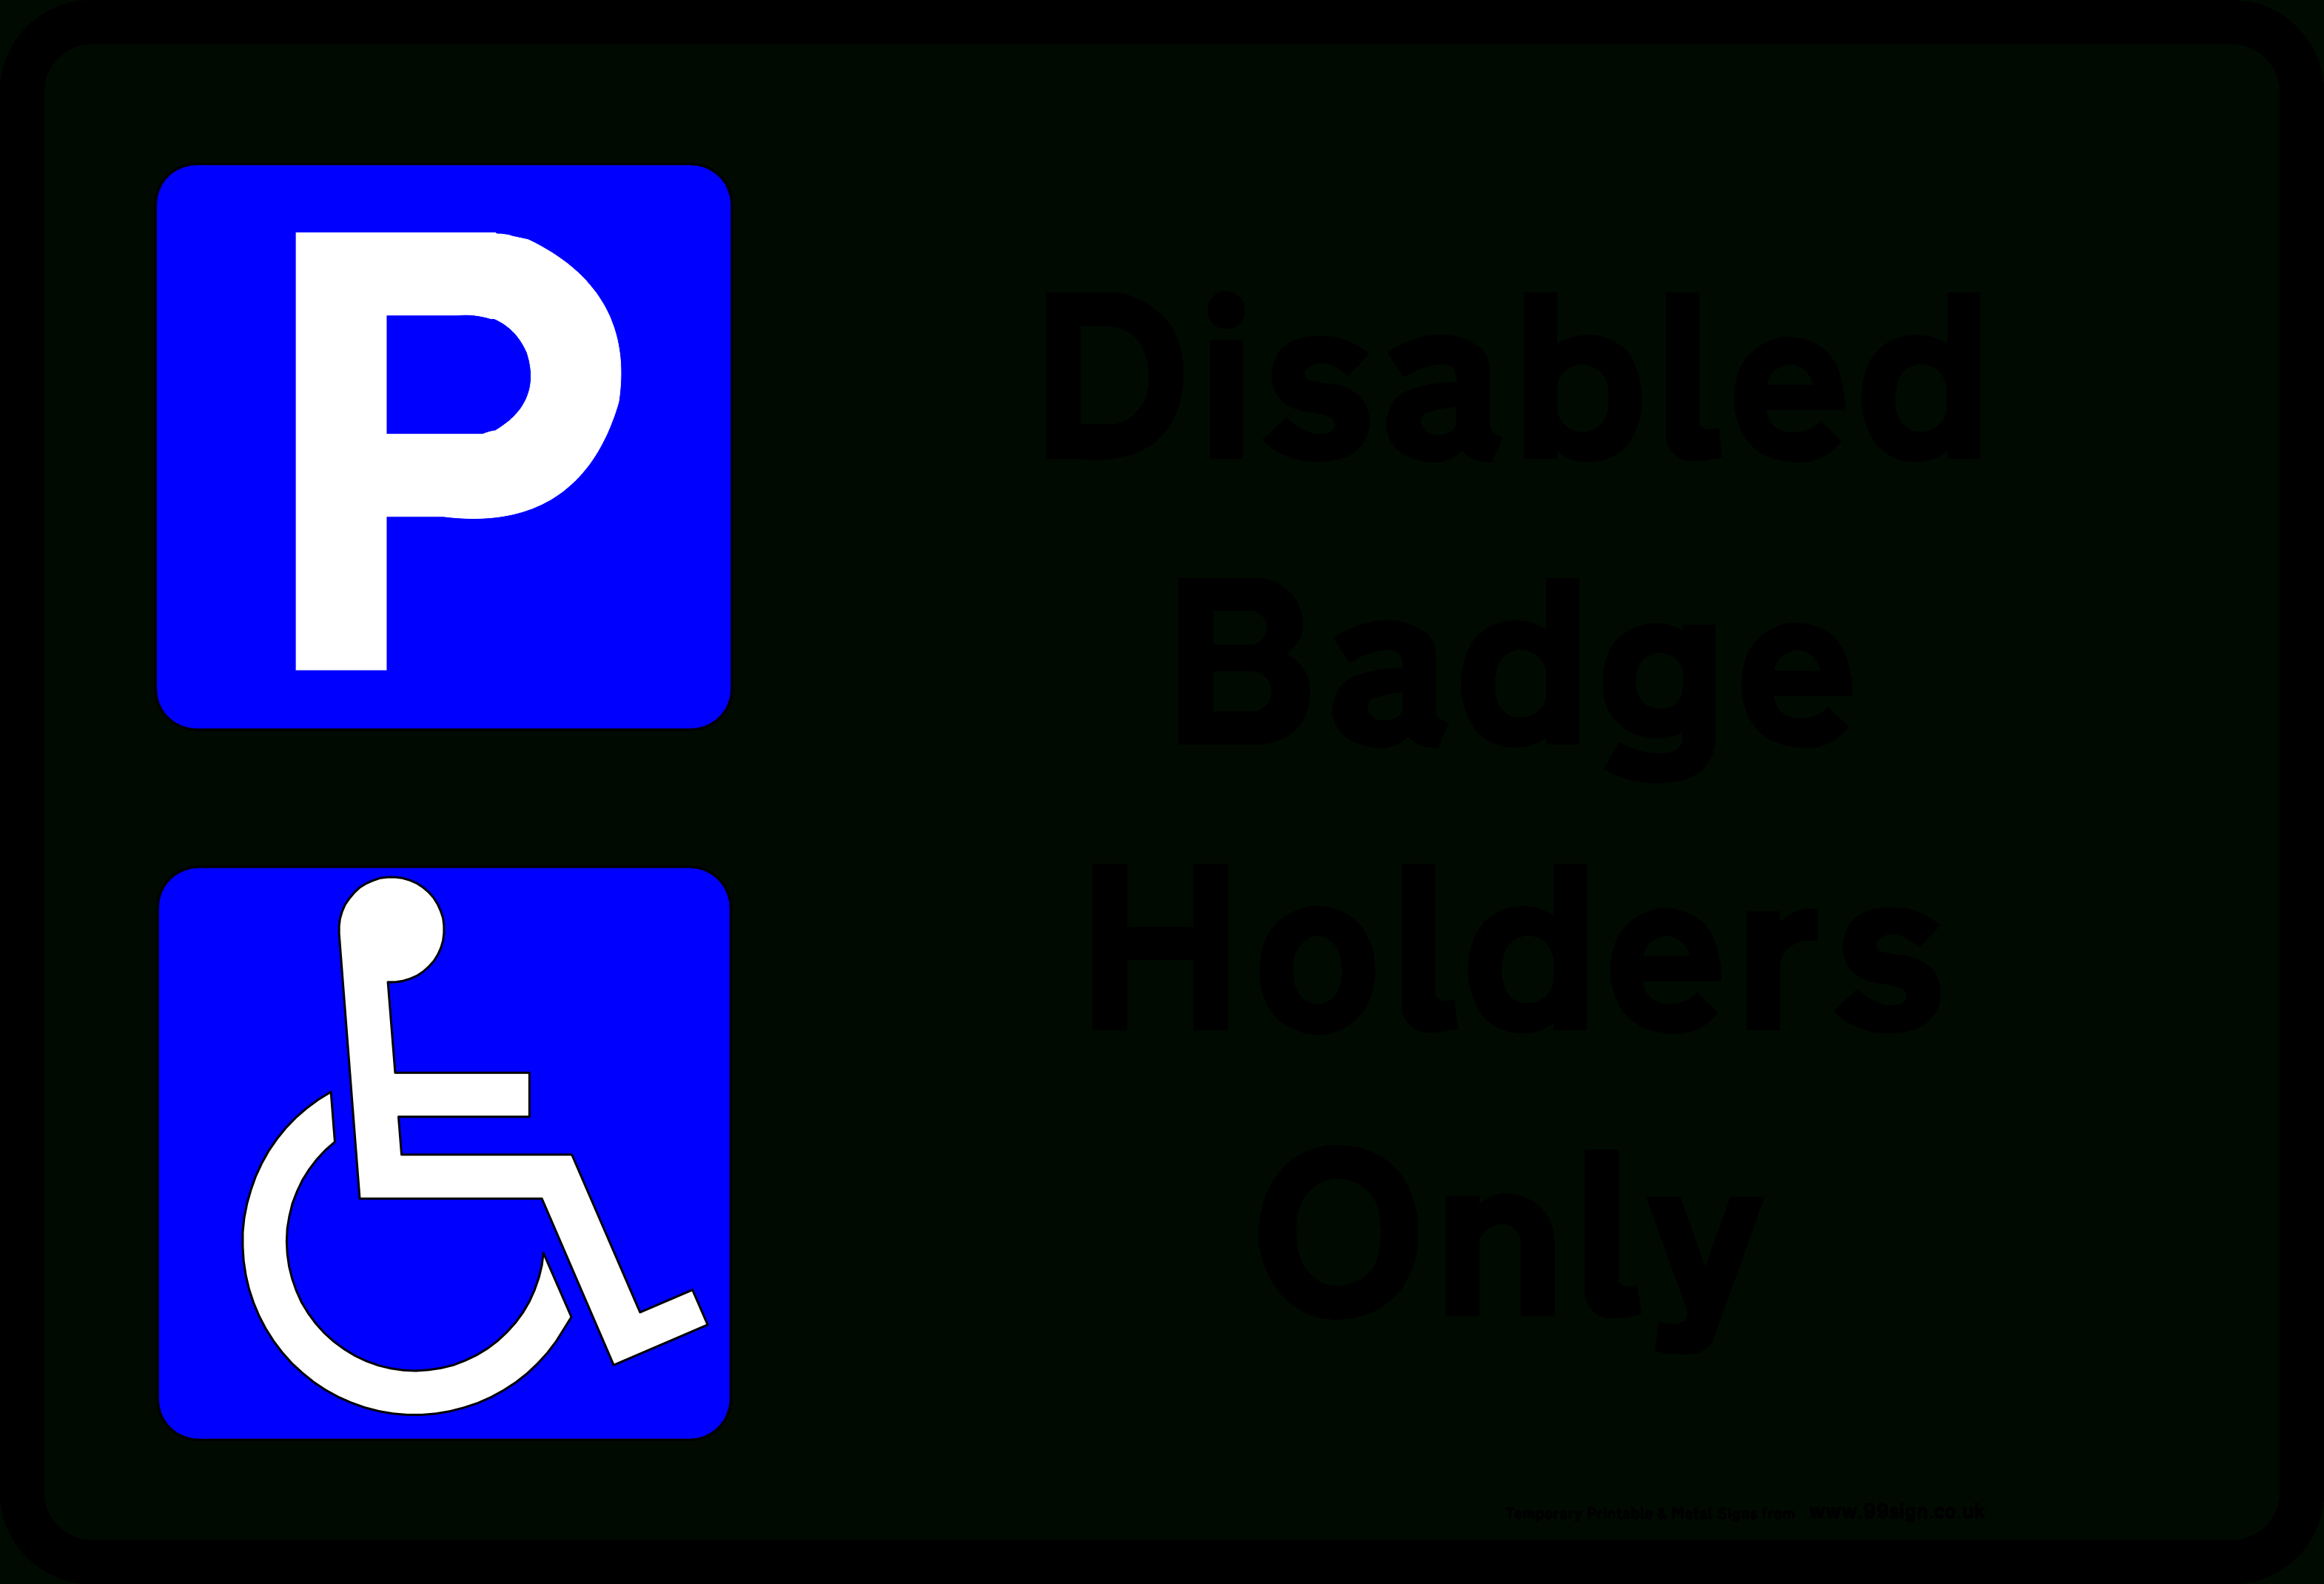 Printable Disabled Parking Sign Low Cost Vinyl Or Free Template Clipart - Free Printable Parking Permits